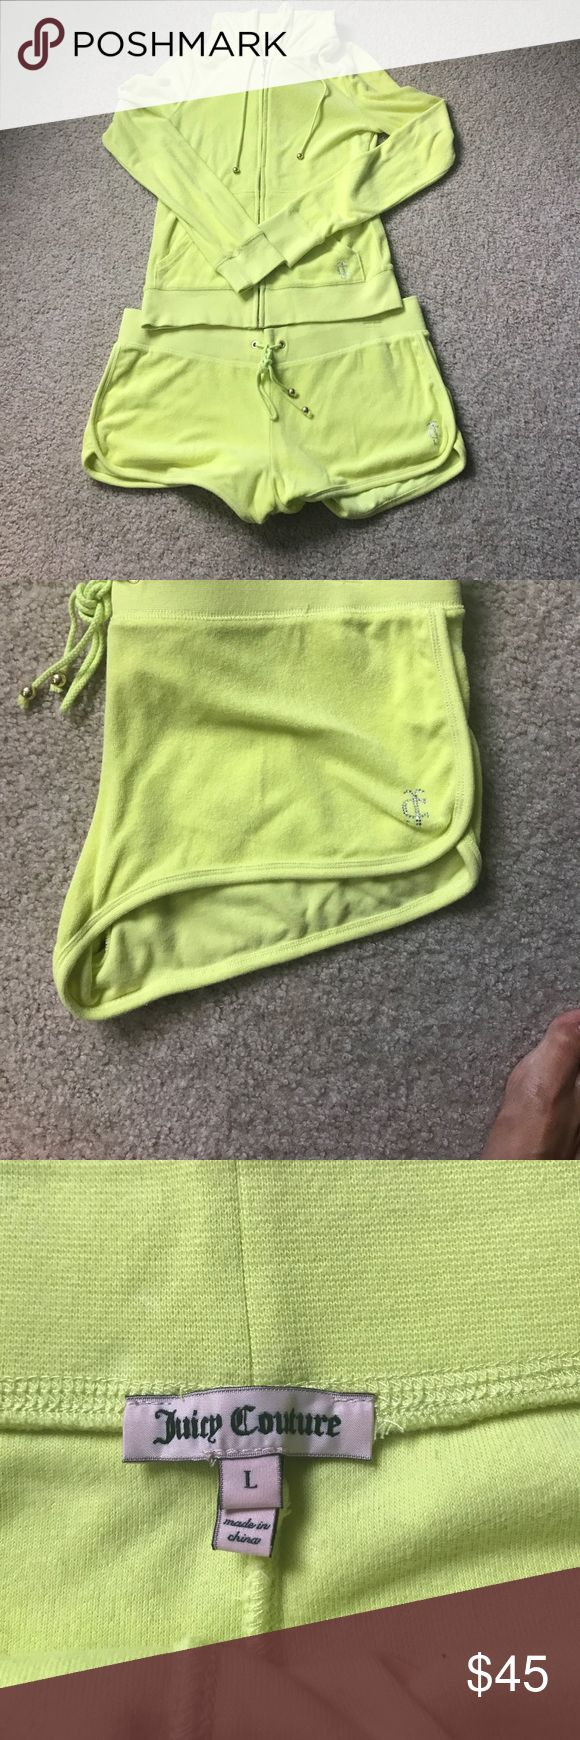 Juicy Couture Sweatsuit - Shorts & Full-zip Hoodie EUC Juicy Couture Sweatsuit - Shorts & Full-zip Hoodie in banana yellow. Please note sizes - hoodie is a medium, shorts are a large. Shorts can be tightened to size with drawstring. Minor piling. Super cute for summer! Questions welcome. Juicy Couture Other